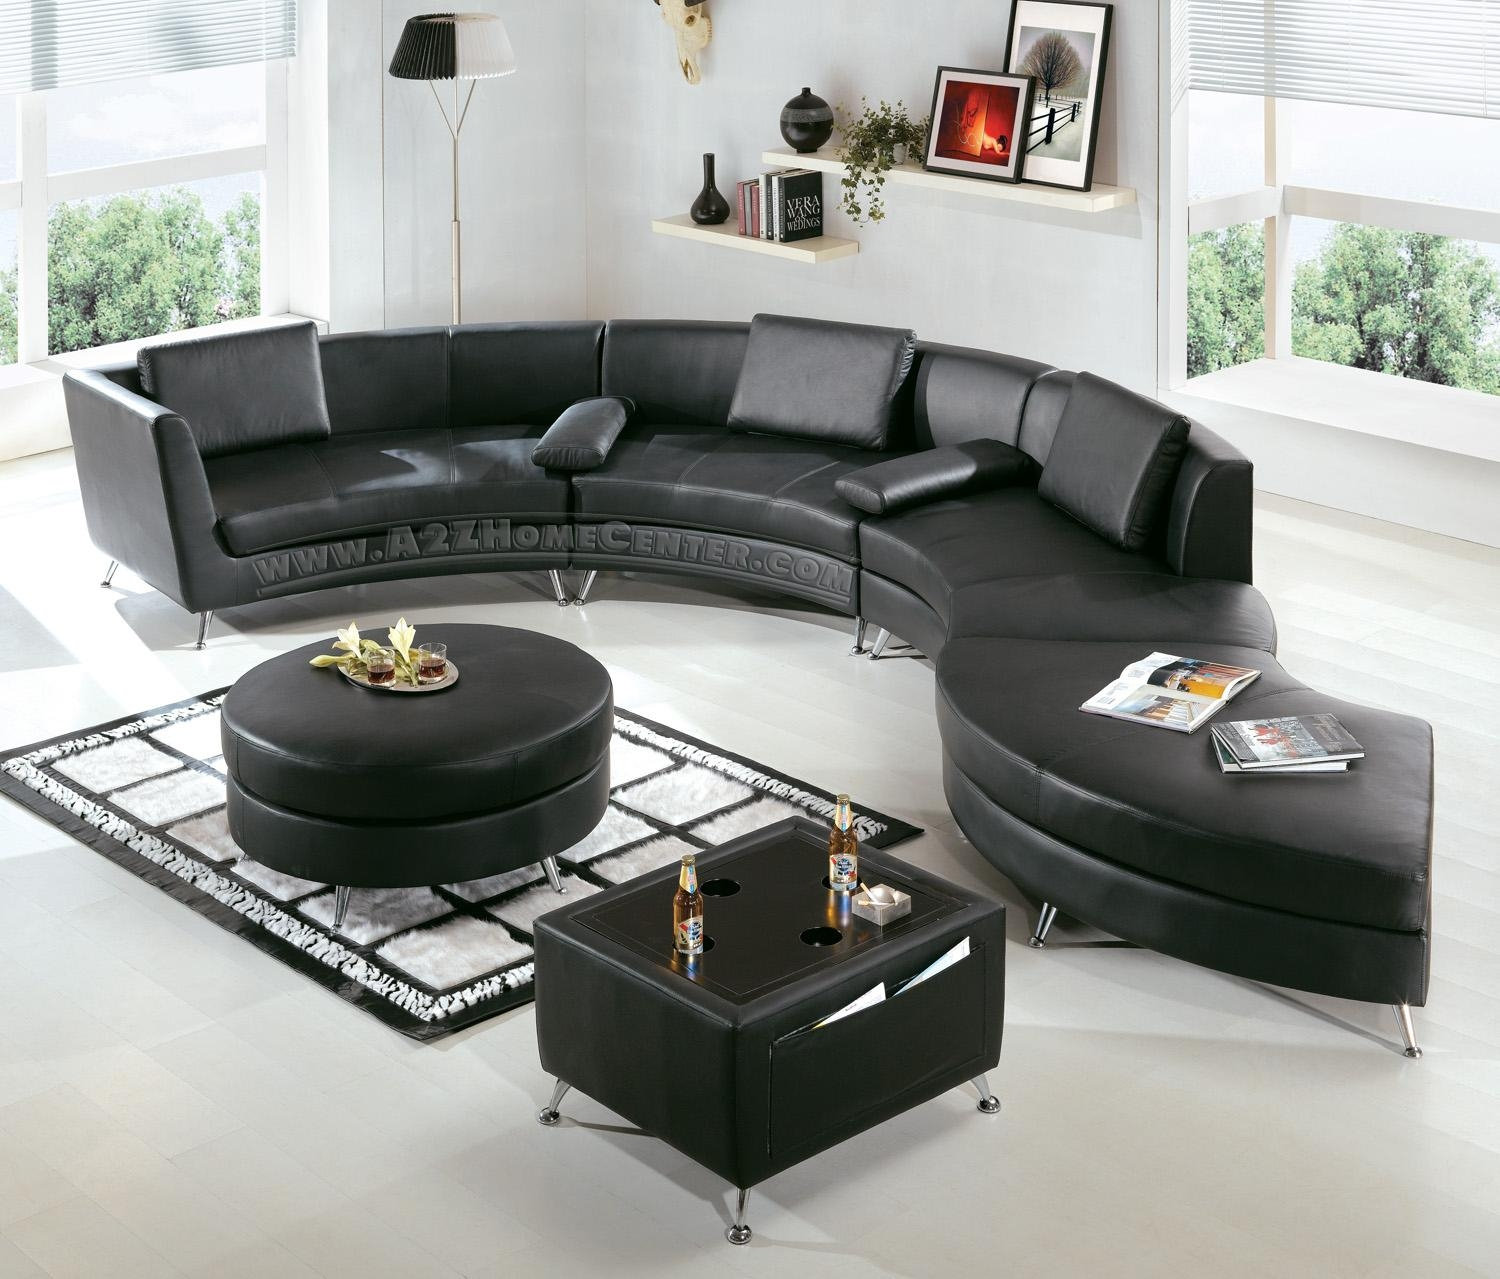 Modern Black Leather Sectional Sofa: Beautiful Pictures, Photos Of Pertaining To Black Modern Couches (Image 13 of 20)